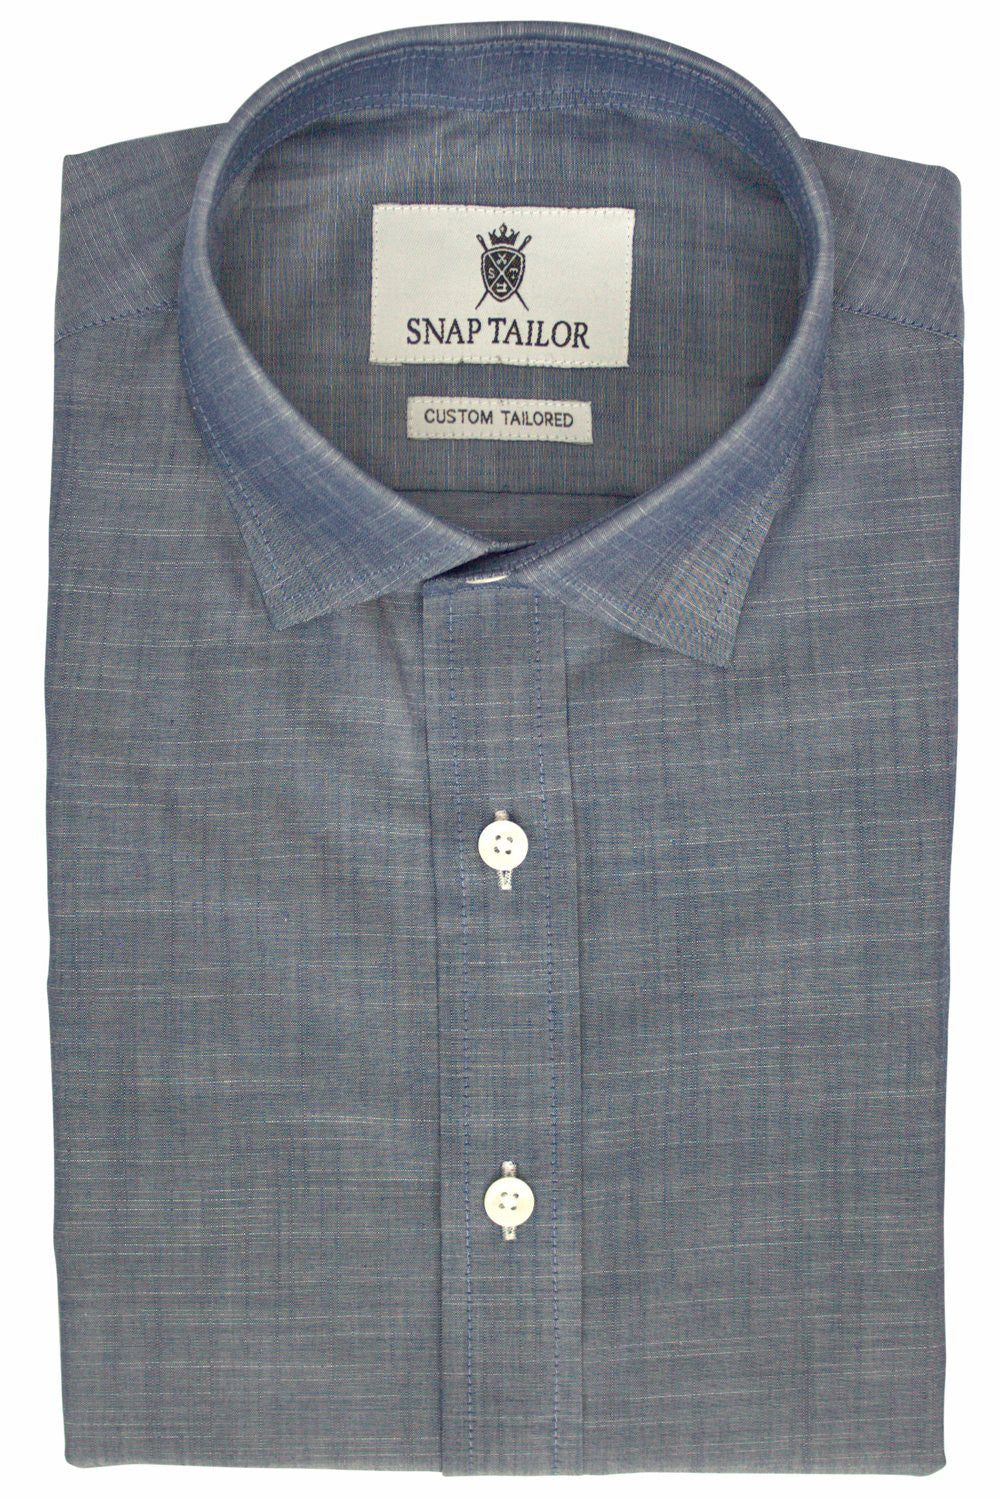 Chambray Casual Shirt In Midnight Blue Snap Tailor